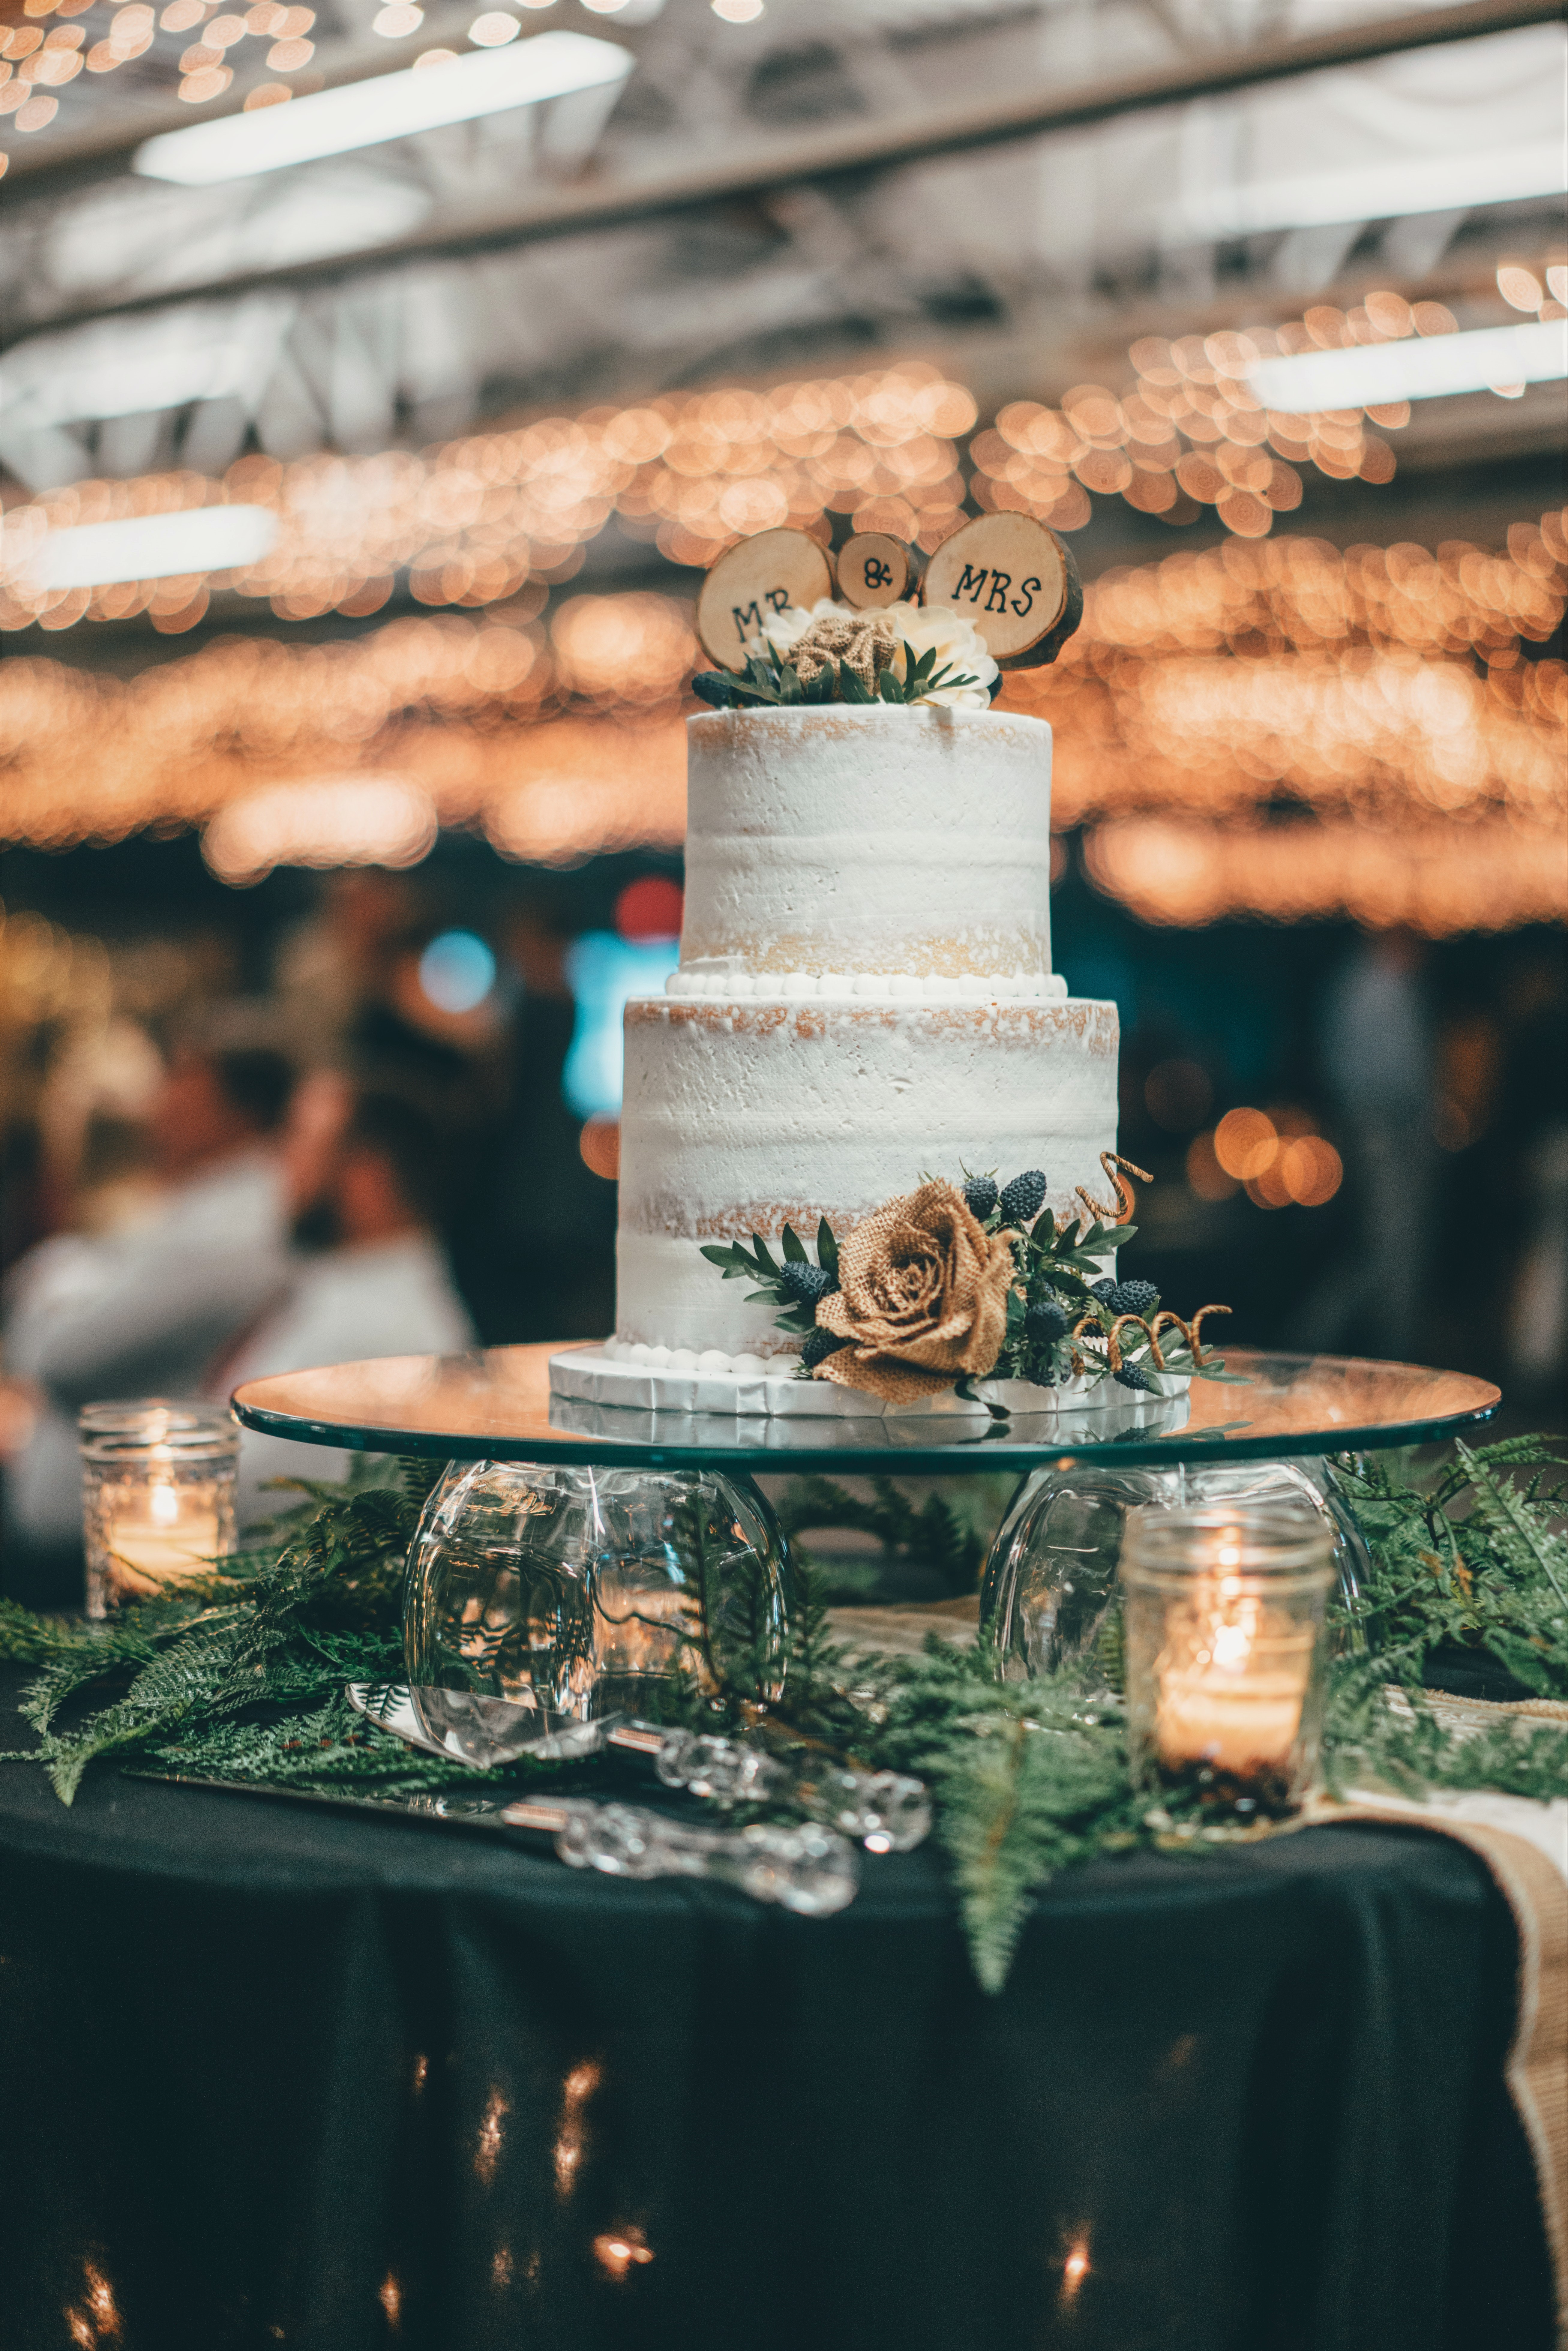 Top 3 Tips for Planning the Cake for Your Wedding Day